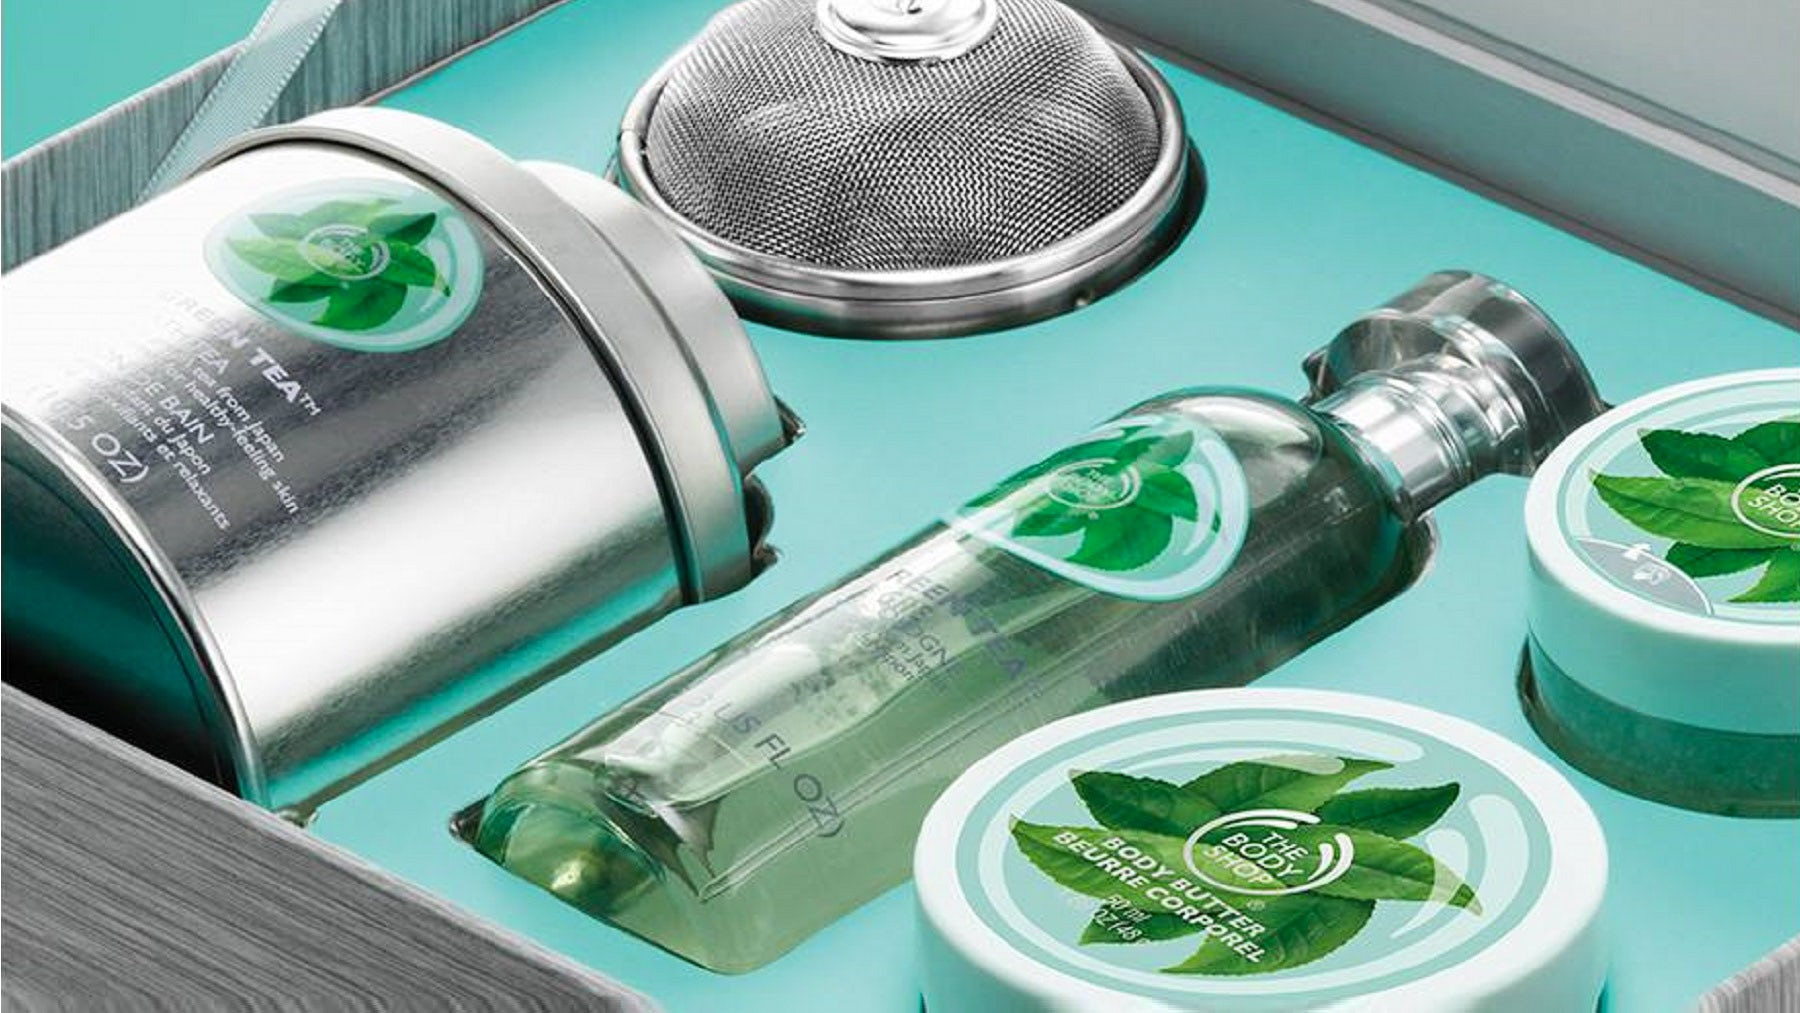 The Body Shop's Fuji Green Tea range | Source: The Body Shop